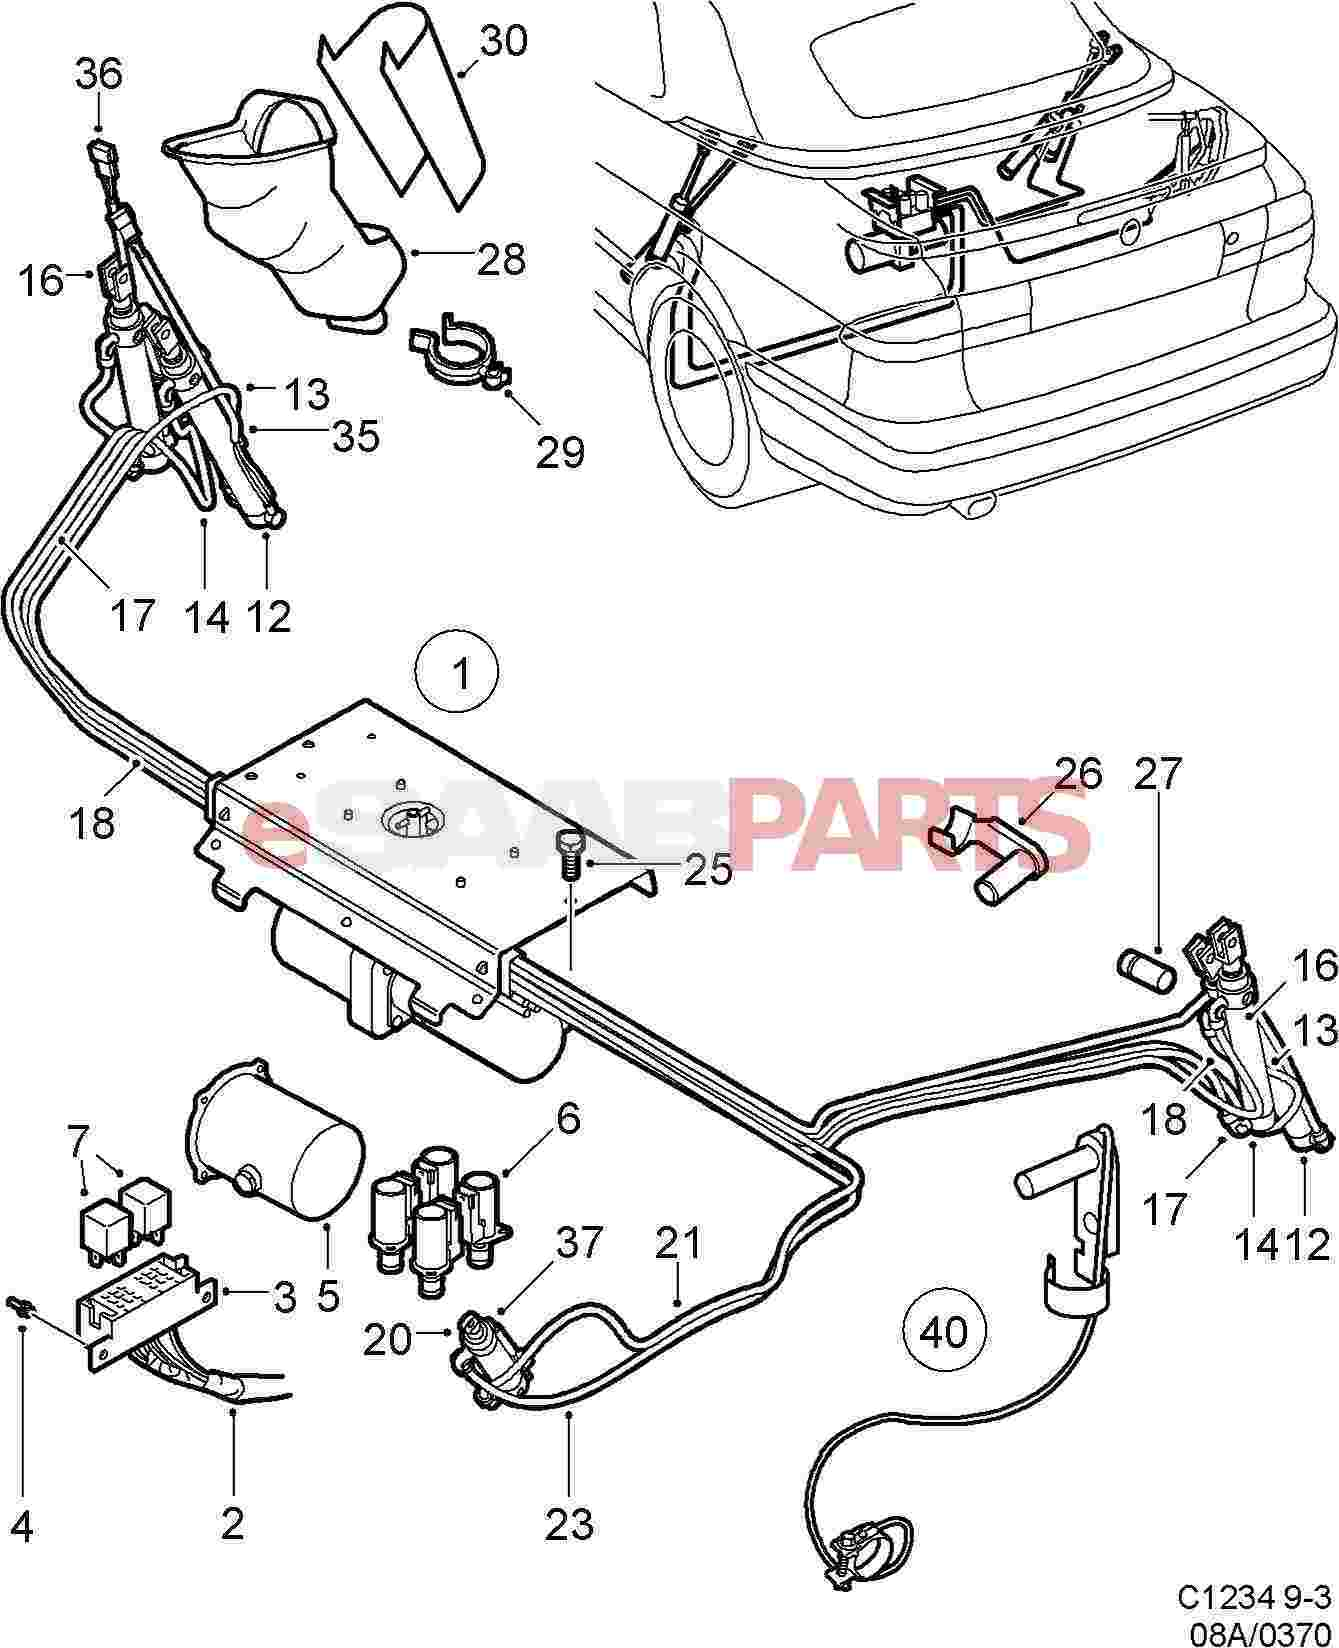 Saab 93 Convertible Roof Wiring Diagram - Wiring Diagram